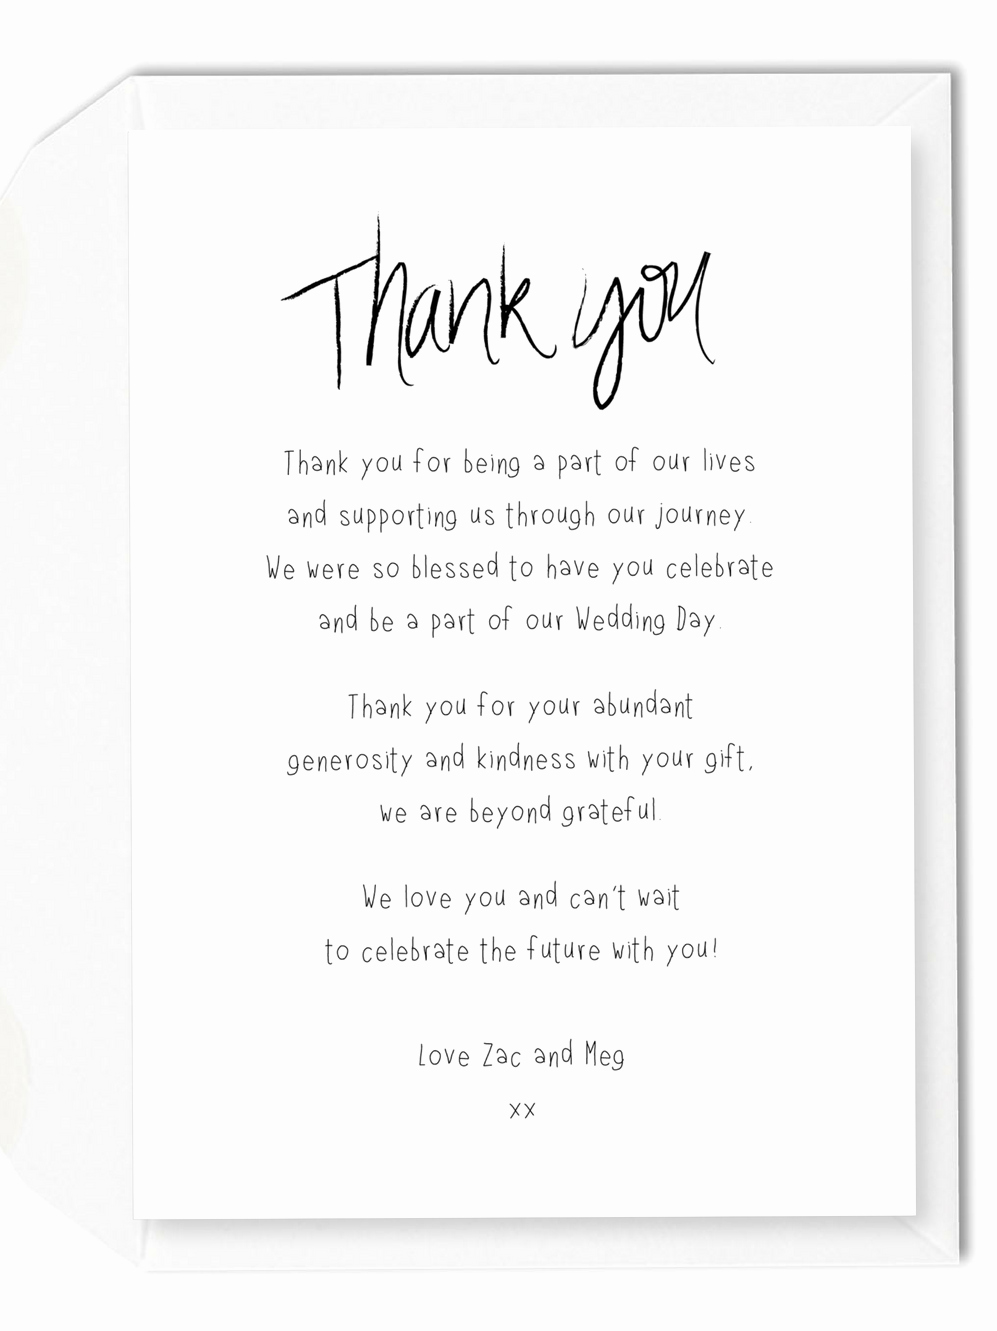 Thank You Note Wording Wedding Inspirational 5 Wording Ideas for Your Wedding Thank You Cards – for the